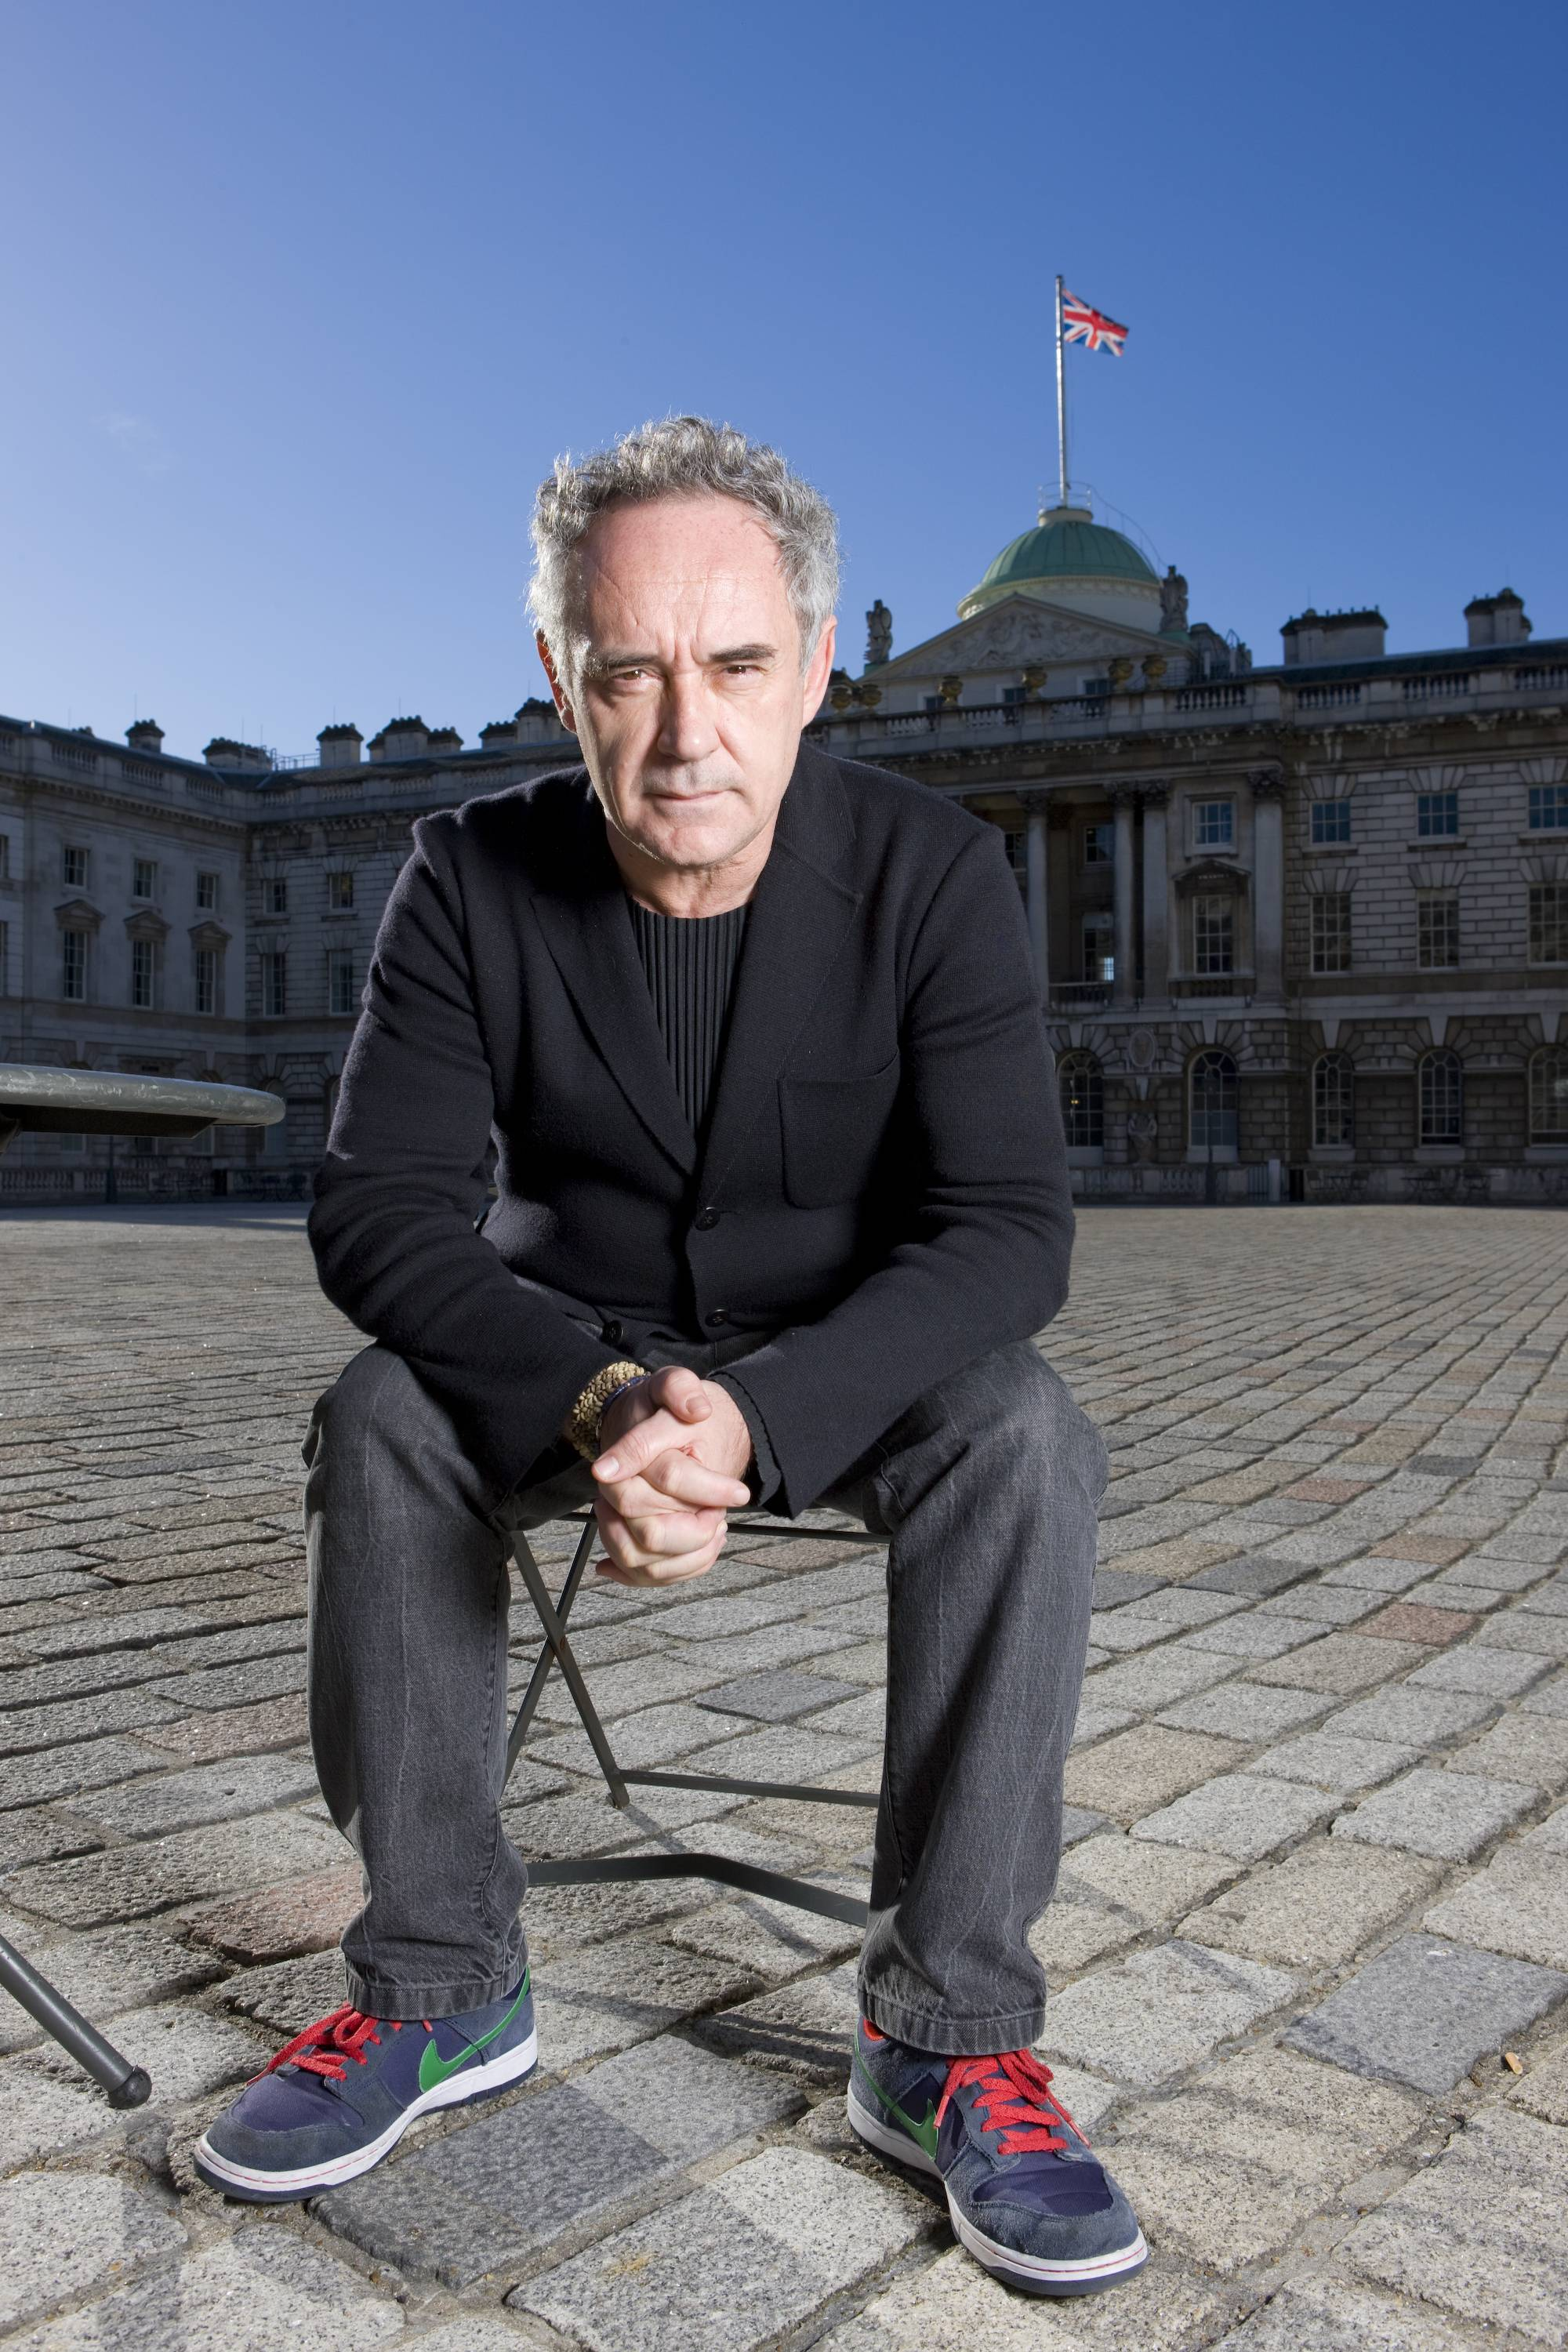 Ferran Adria, El Bulli chef, at Somerset House by Sam Mellish